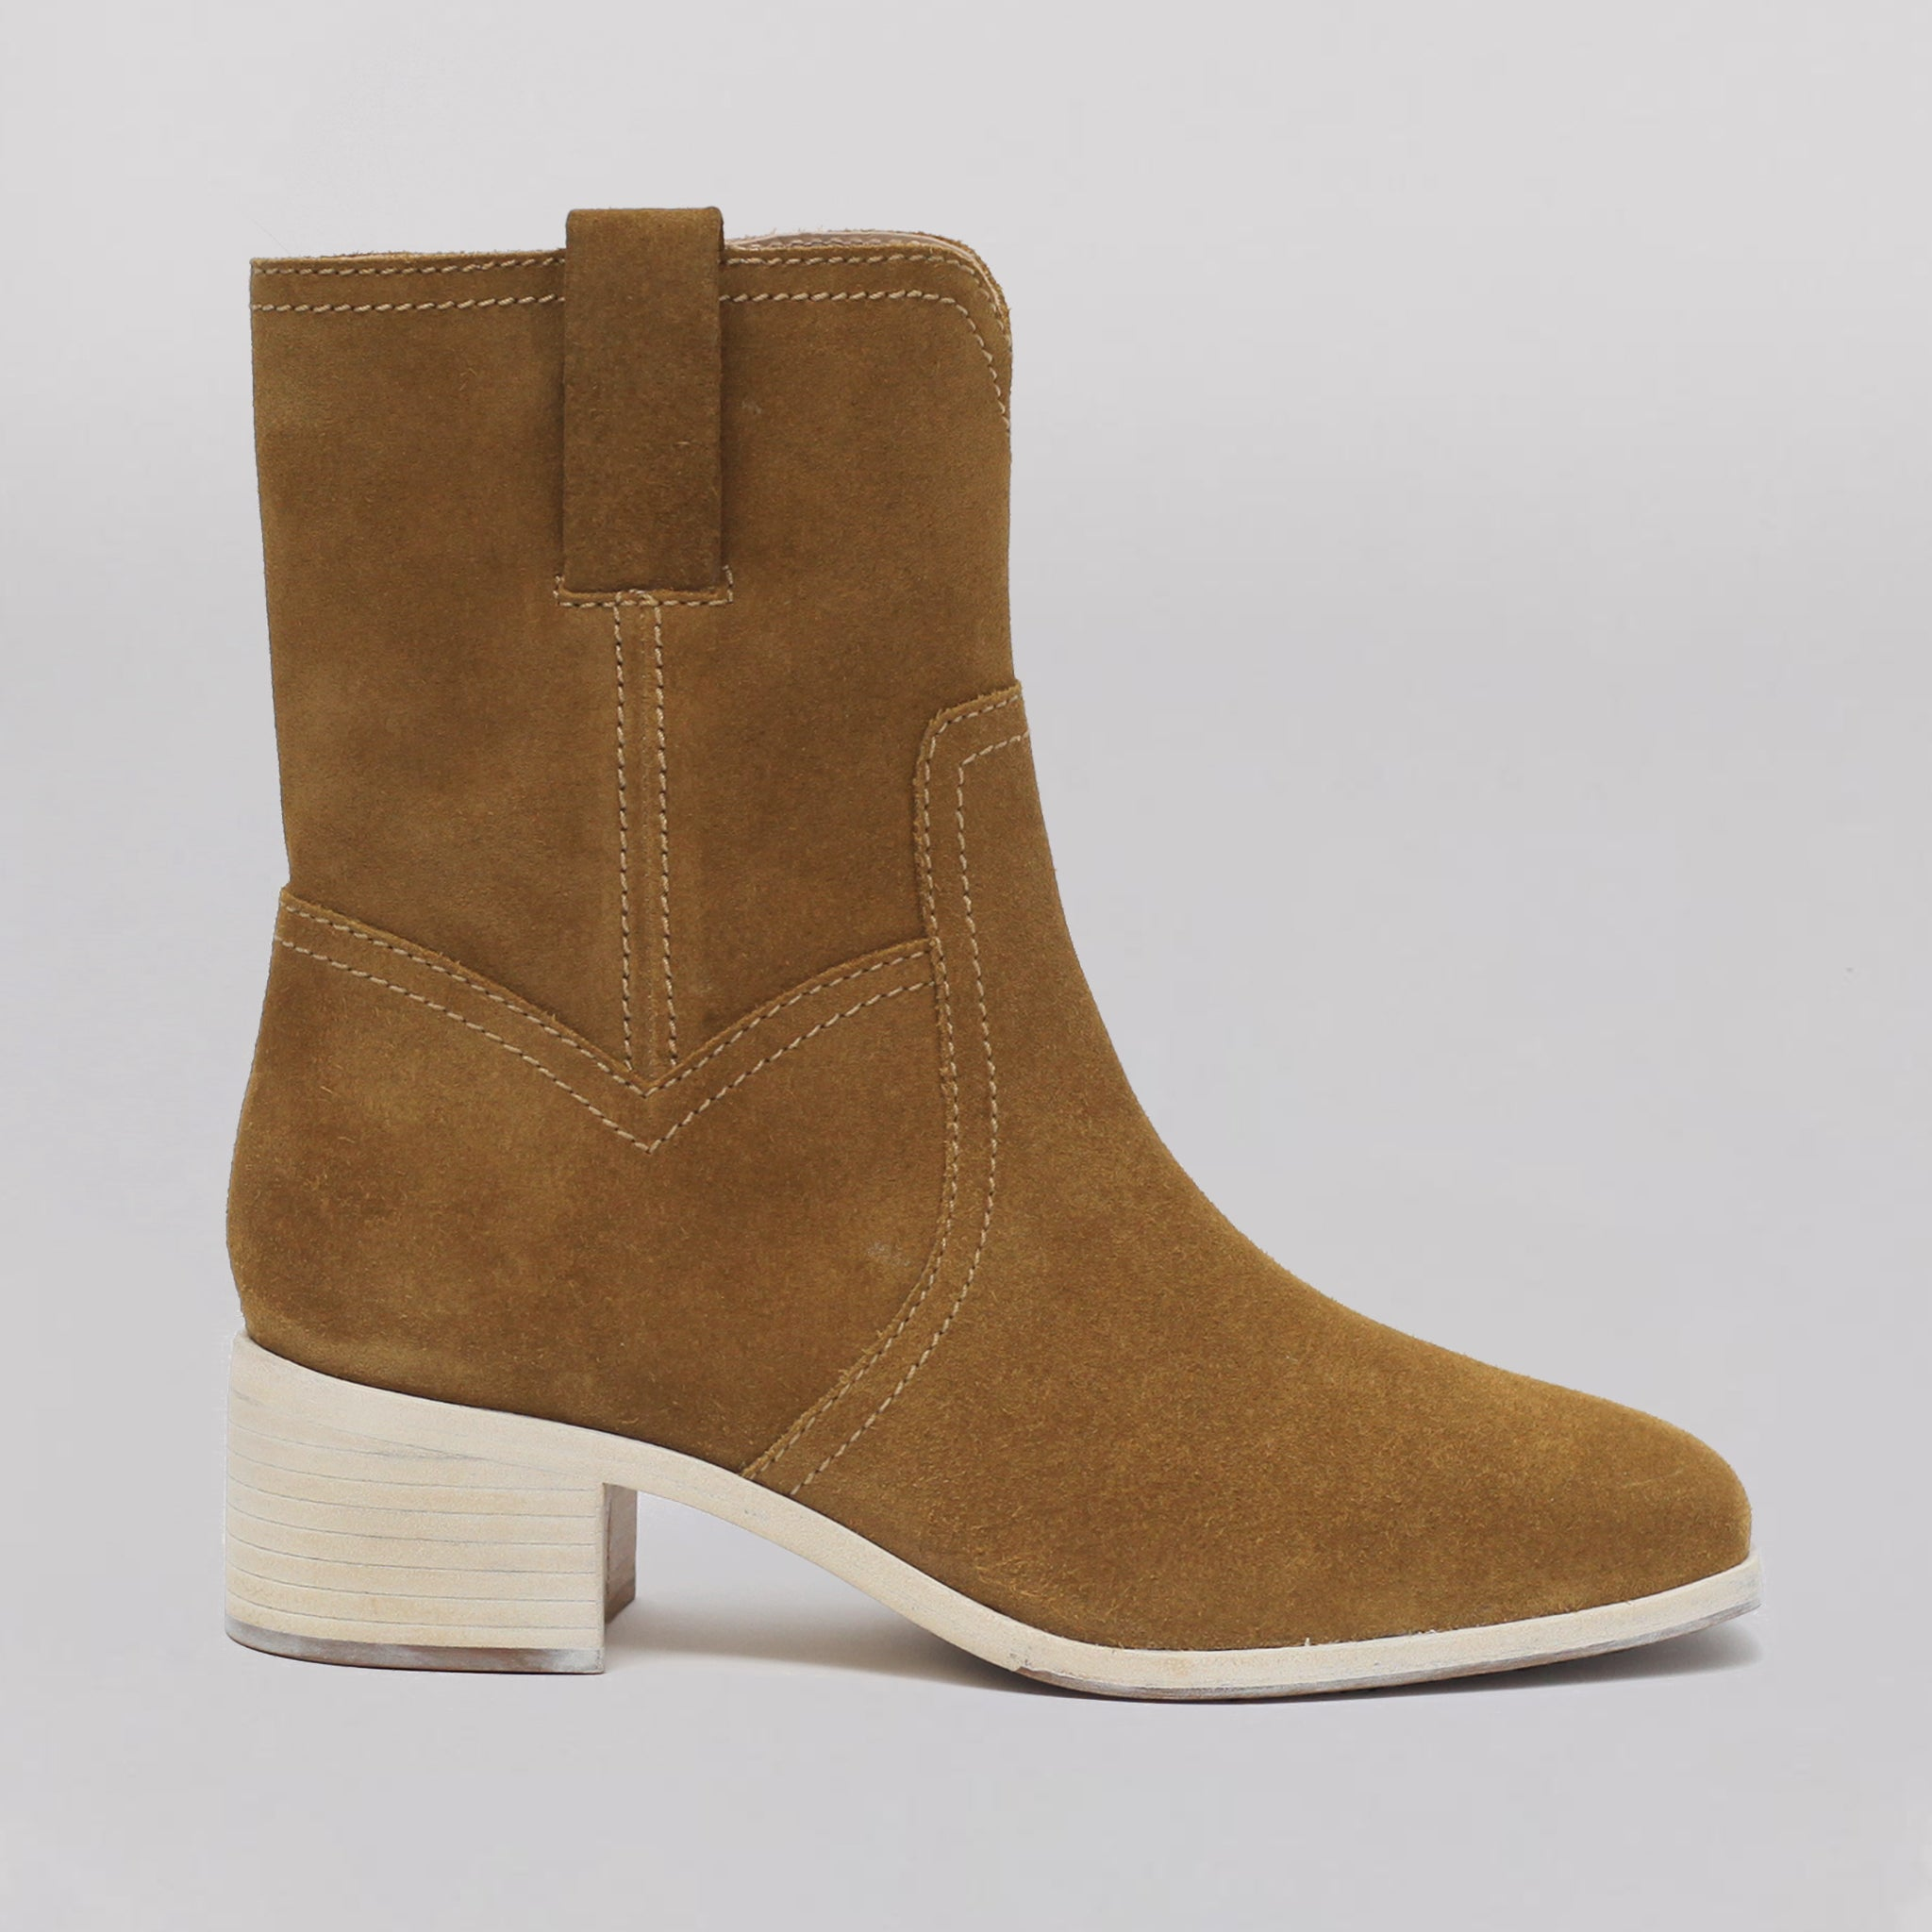 Tilda boot, golden brown